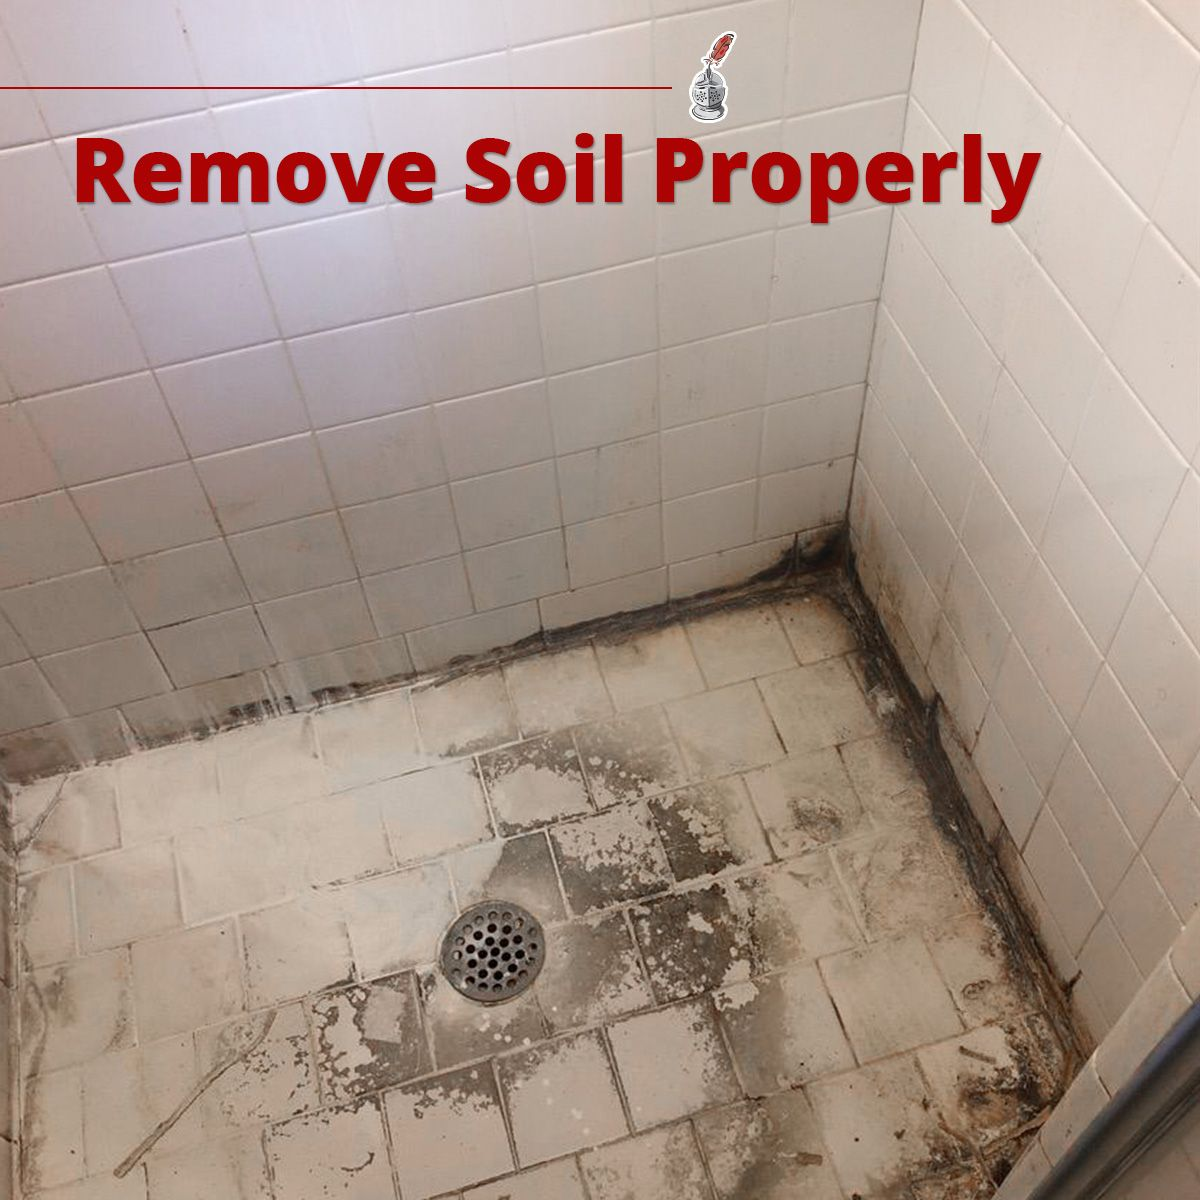 Remove Soil Properly